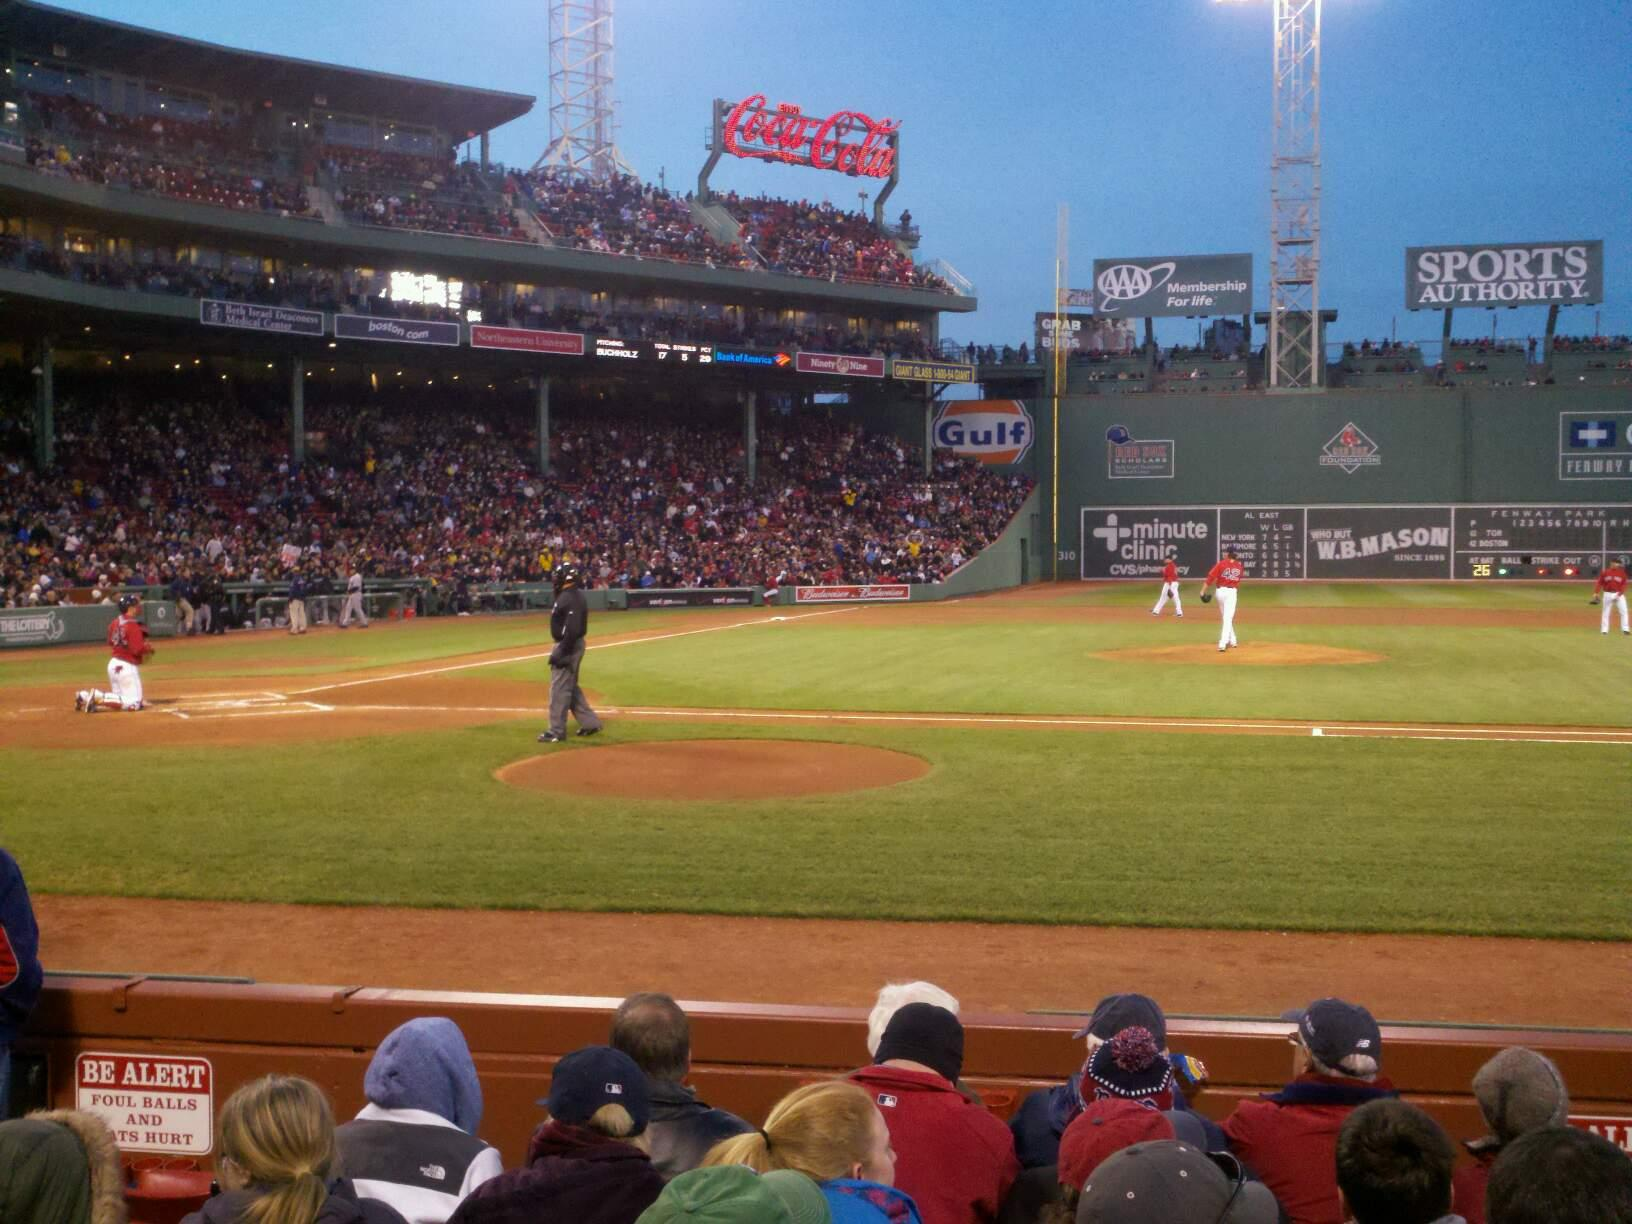 Fenway Park Section 16-FB32 Row E Seat 3